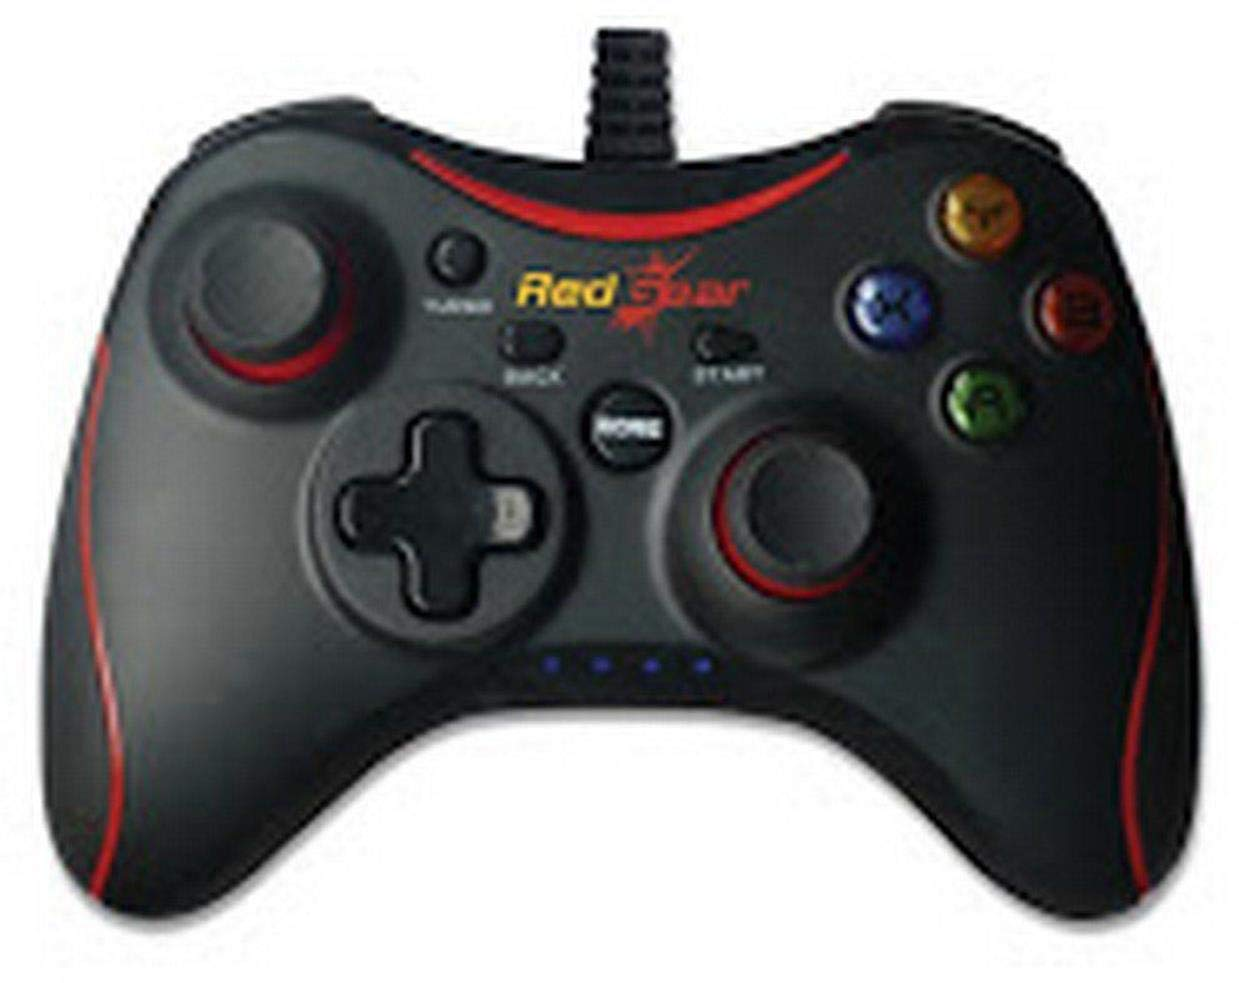 Redgear Pro Series Wired Gamepad Plug and Play Support for